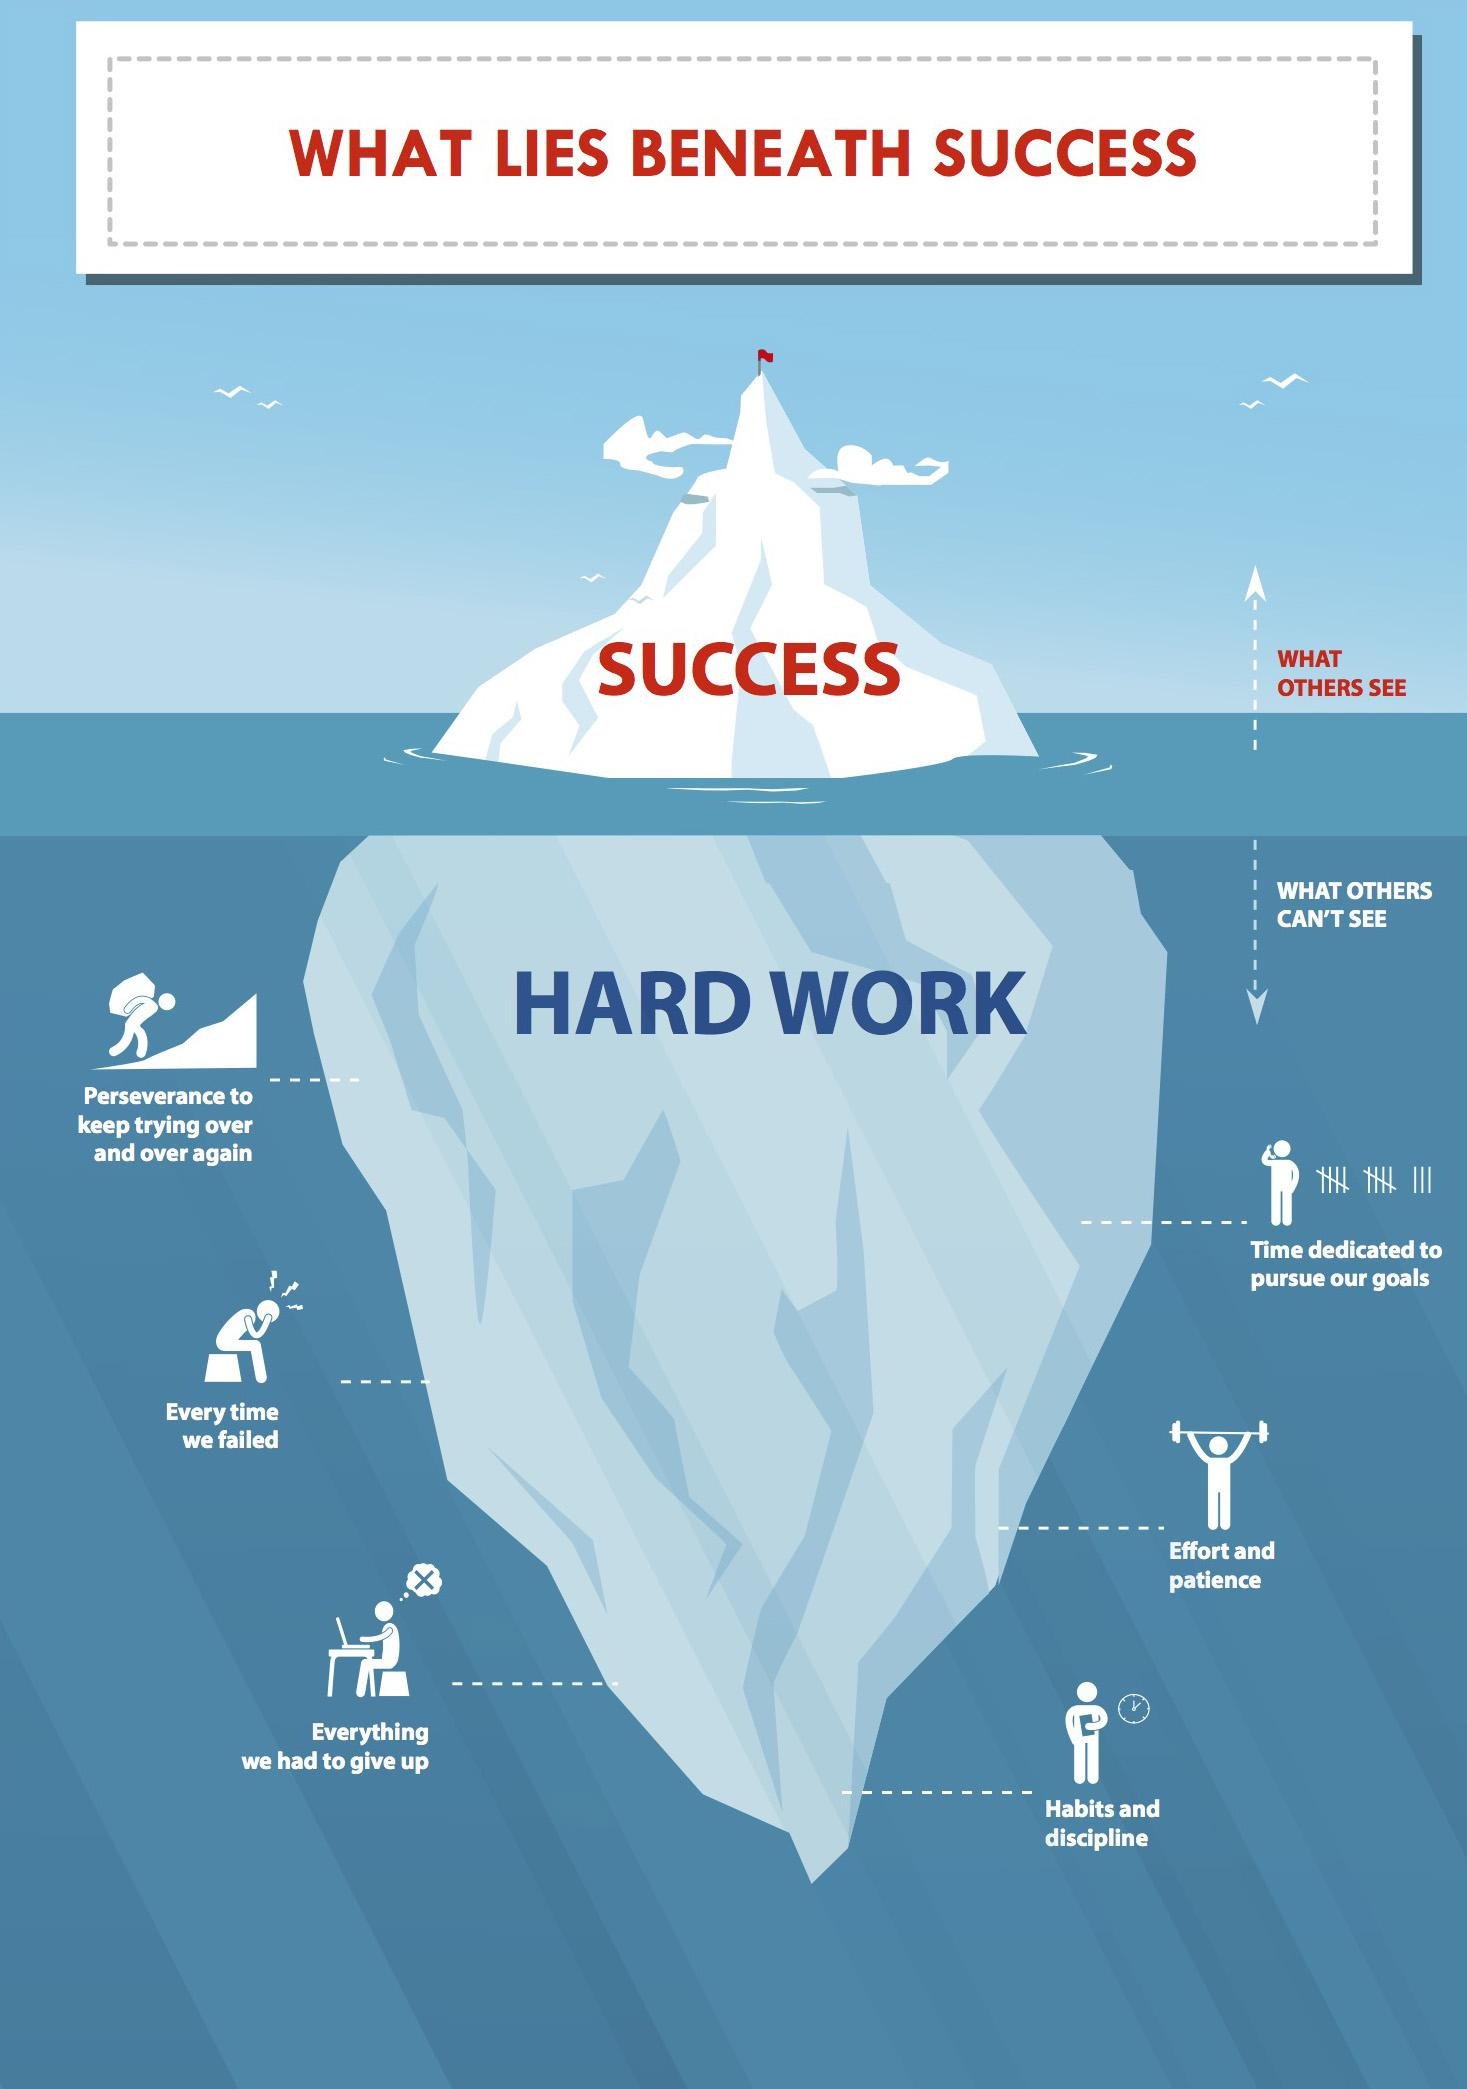 [IMAGE] What lies beneath success